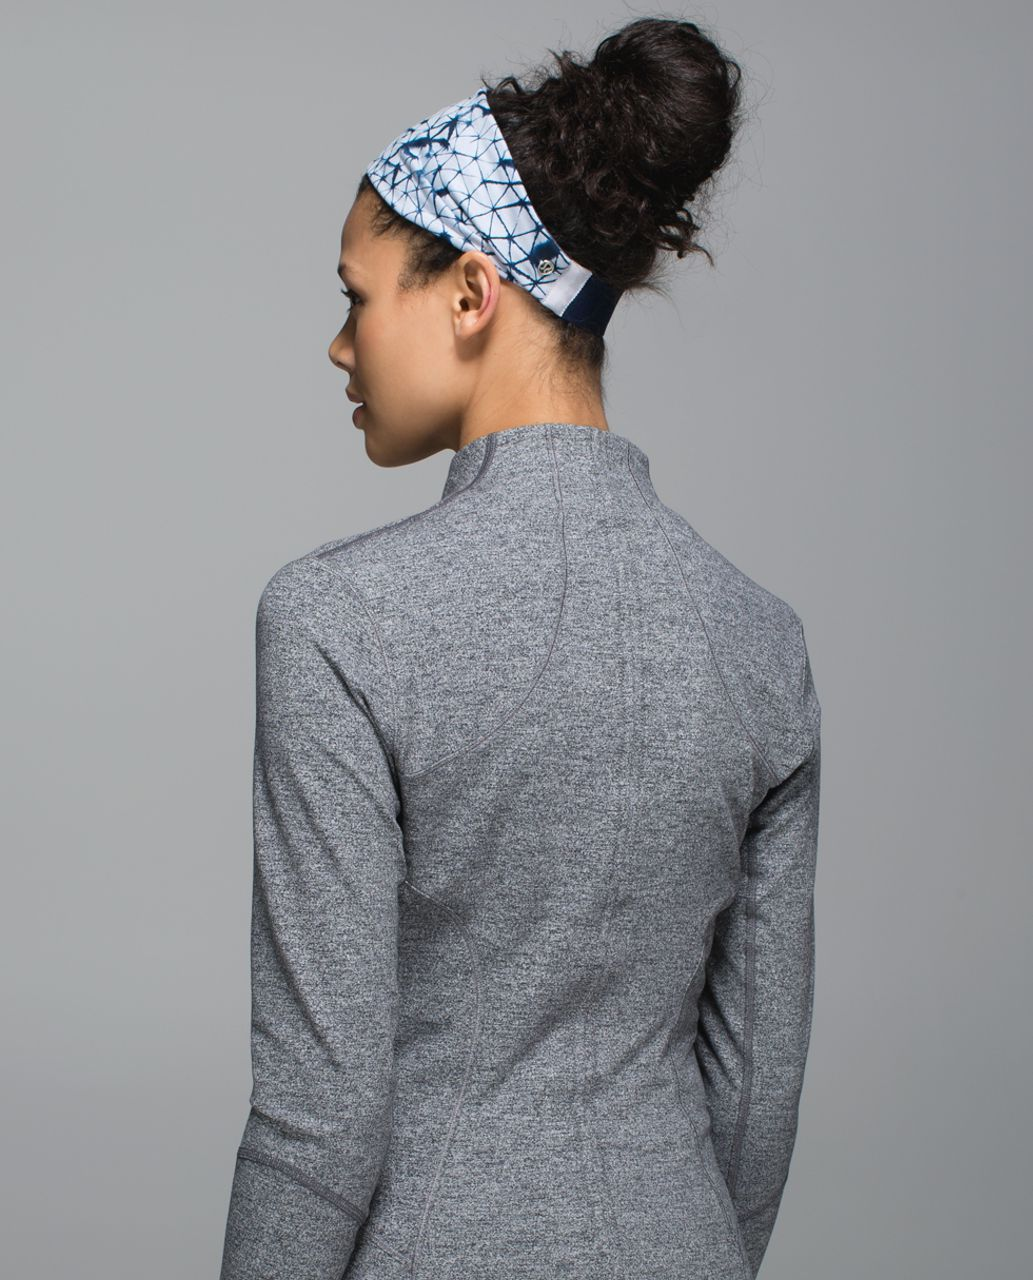 Lululemon Fringe Fighter Headband - Star Crushed Silver Fox Deep Navy / Heathered Deep Navy